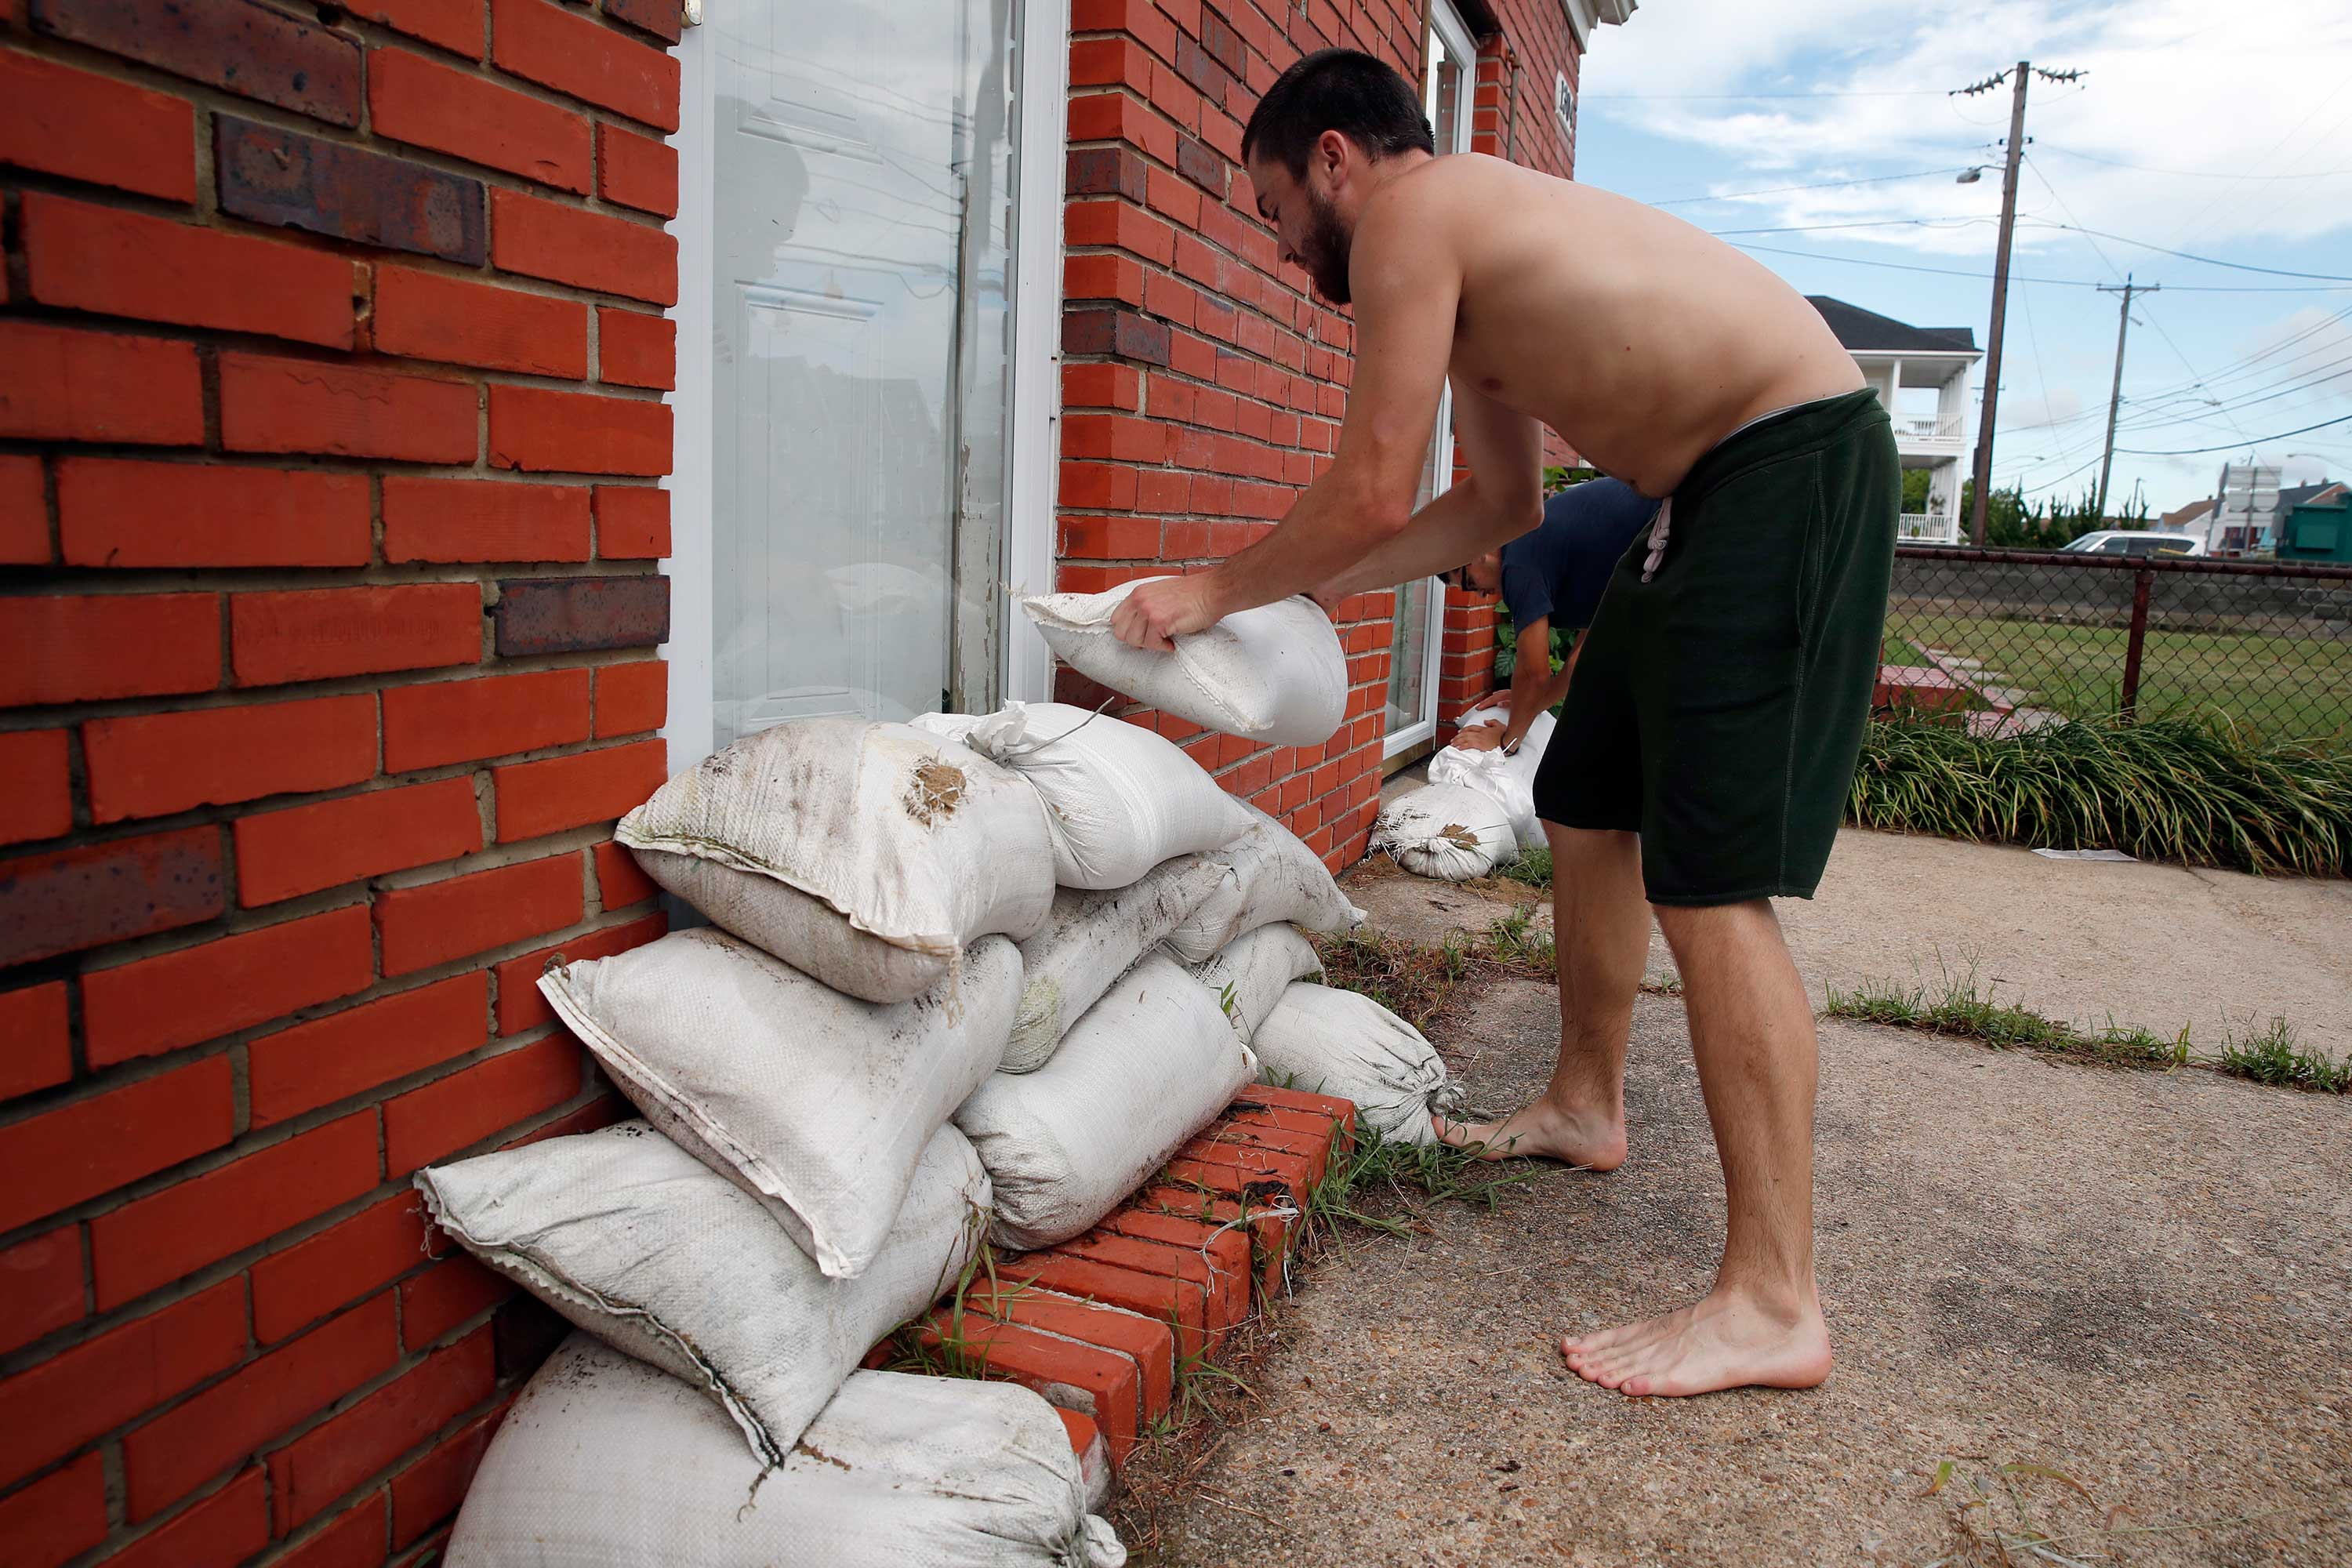 "<div class=""meta image-caption""><div class=""origin-logo origin-image none""><span>none</span></div><span class=""caption-text"">Adam Bazemore places sandbags in the doorways, Tuesday, Sept. 11, 2018, in the Willoughby Spit area of Norfolk, Va., as he makes preparations for Hurricane Florence. (Alex Brandon/AP Photo)</span></div>"